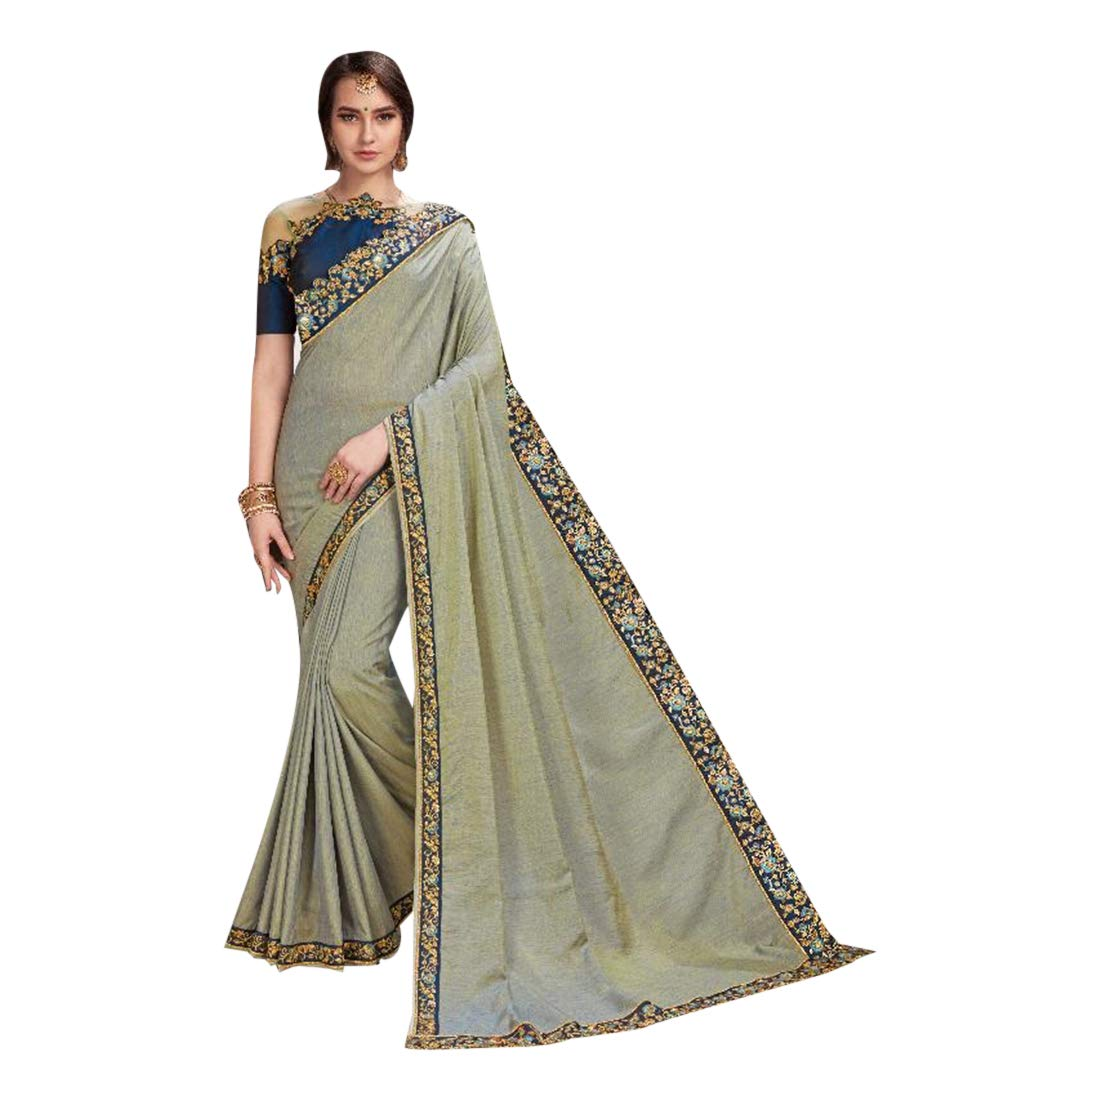 Grey Designer Rich Embroidery Cherry Silk Sari with Cutwork Blouse Indian Saree for Women Party wear 7721